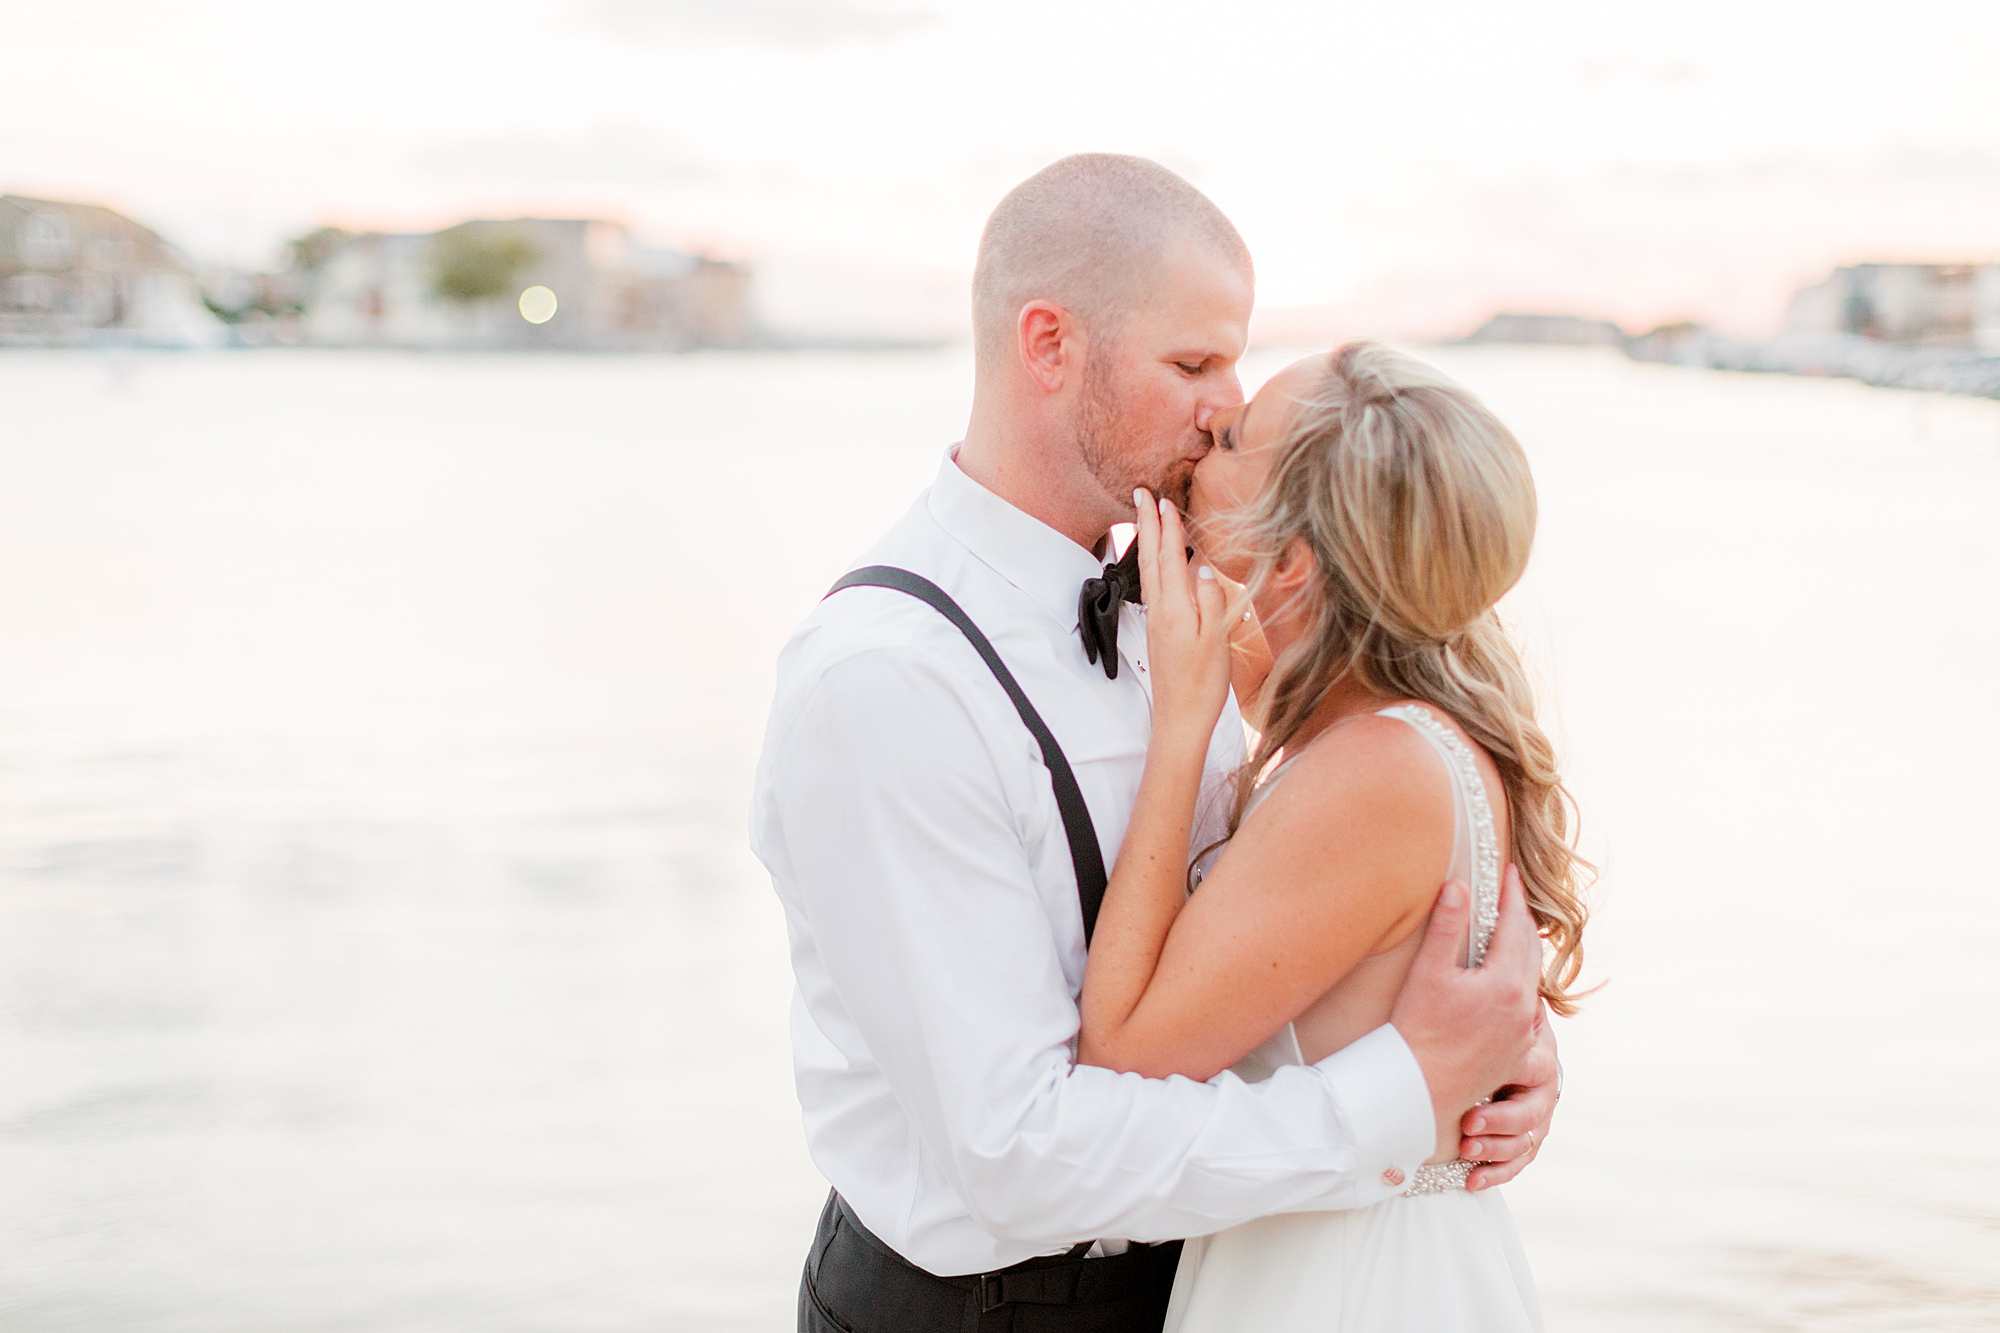 Natural and Vibrant Wedding Photography at the Reeds in Stone Harbor NJ by Magdalena Studios 0063